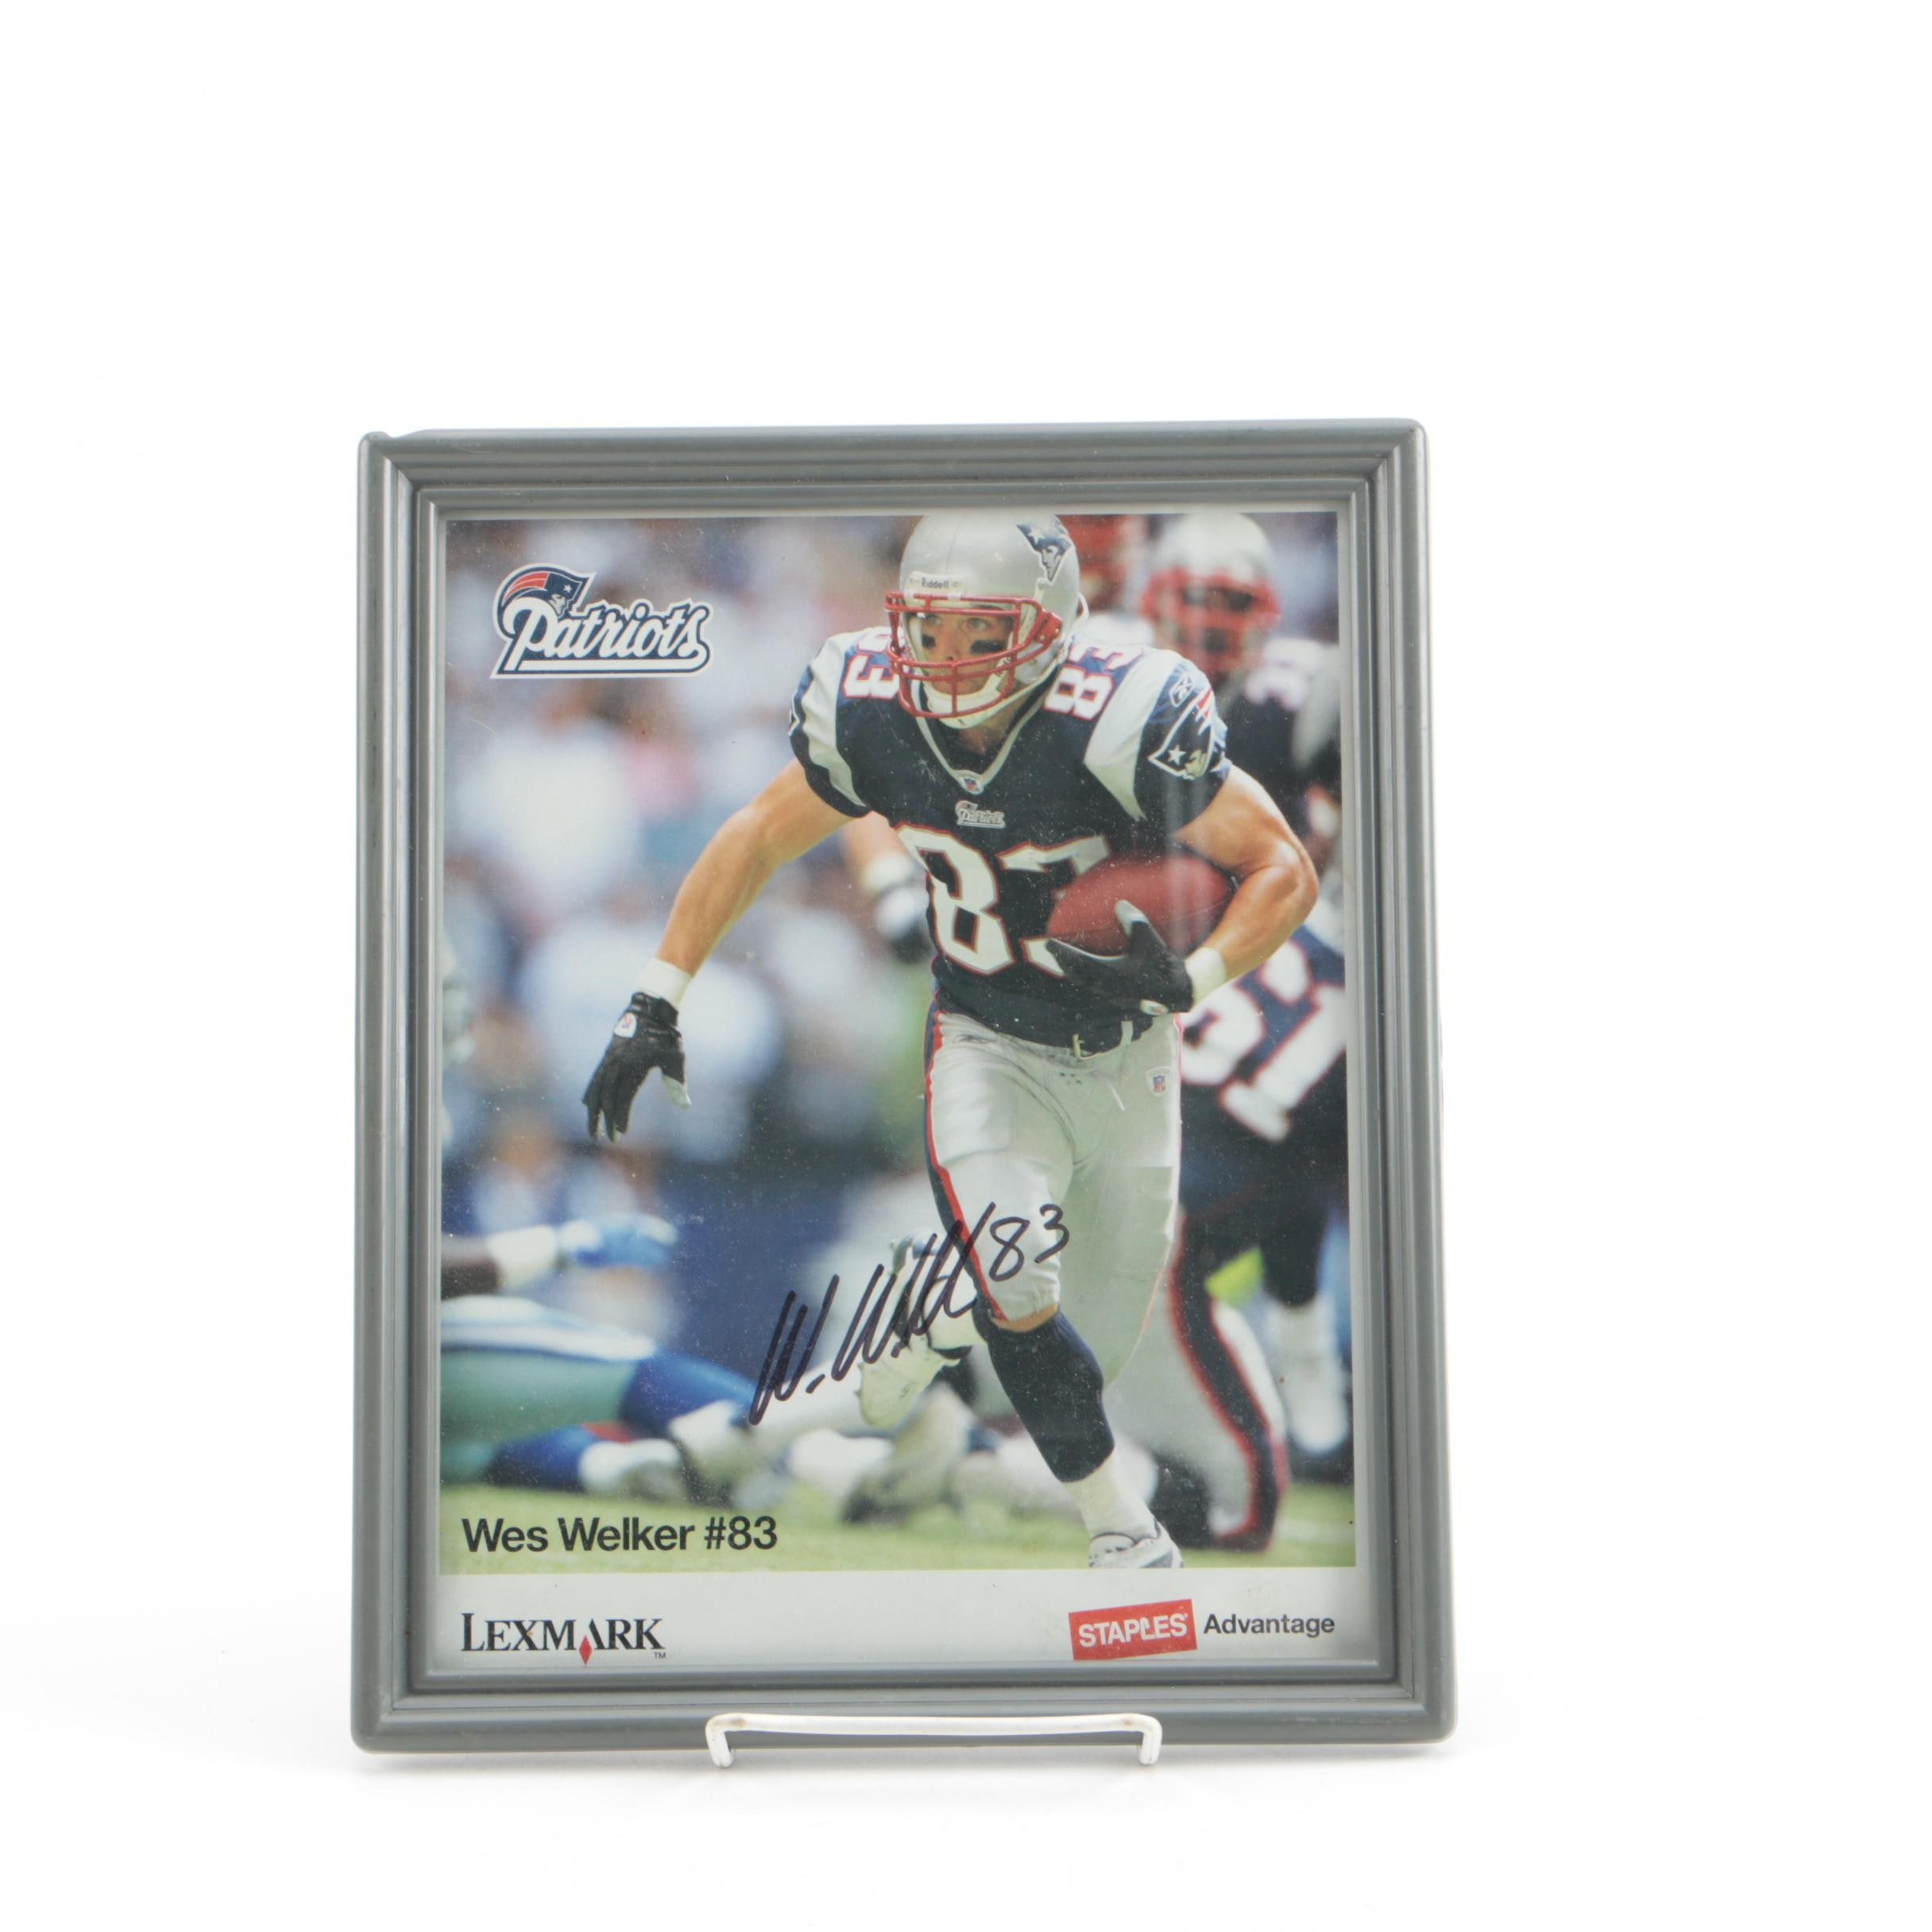 Wes Welker Autographed Offset Lithograph